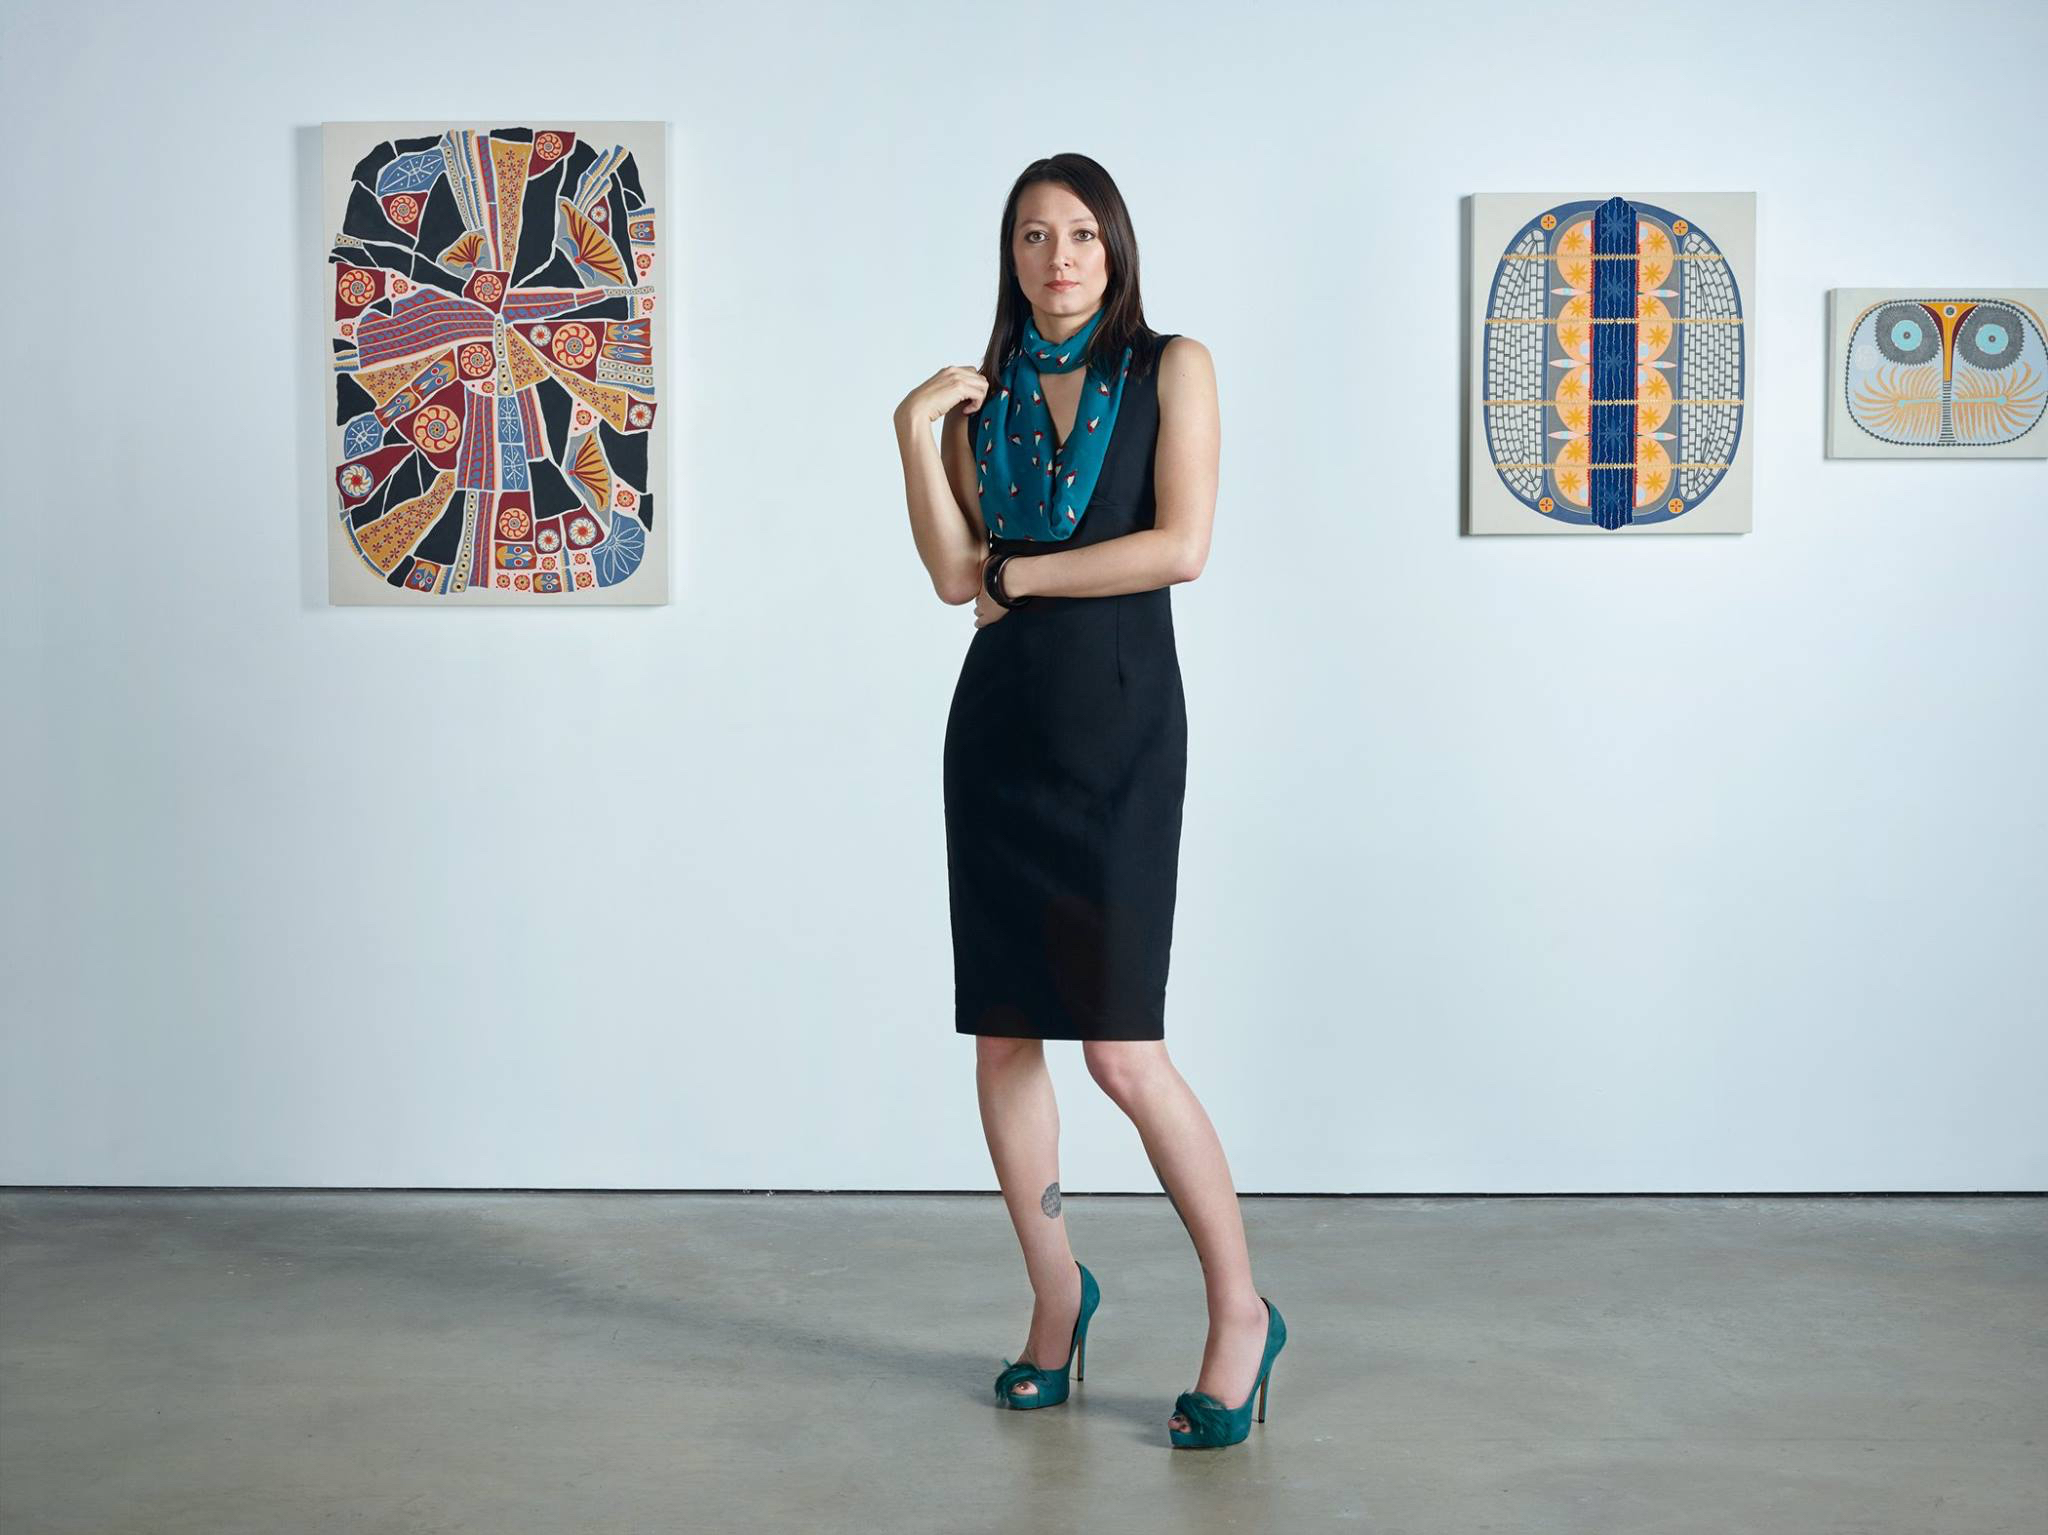 Cindy Lisica with artwork by Catherine Colangelo. Photo by Jan Rattia, 2017.